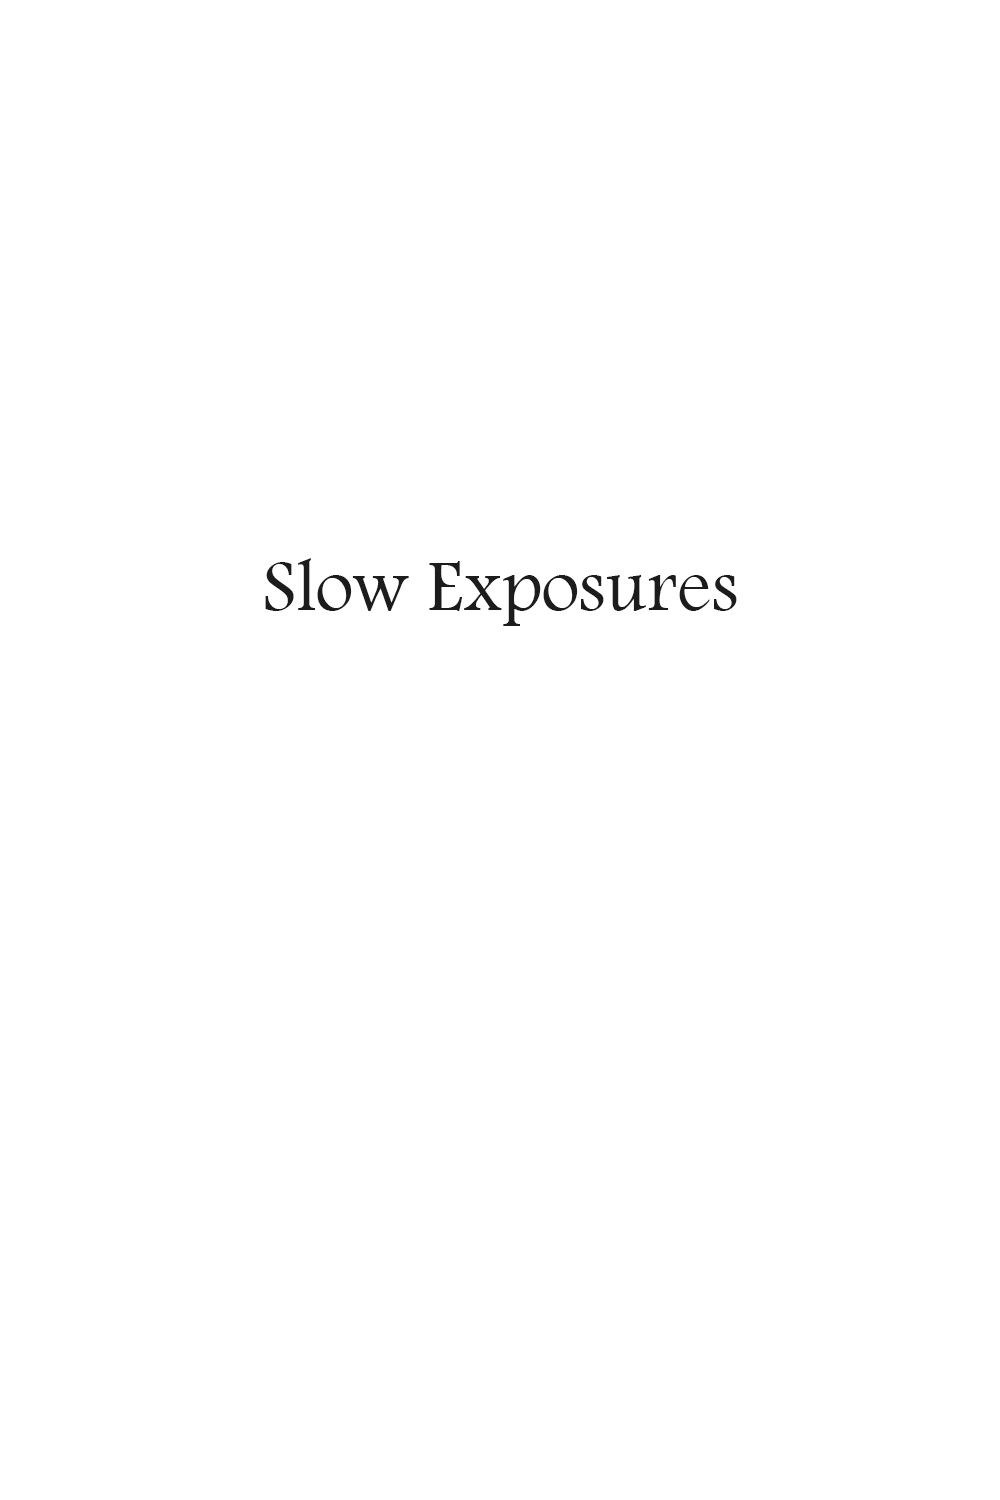 Slow Exposures.jpg